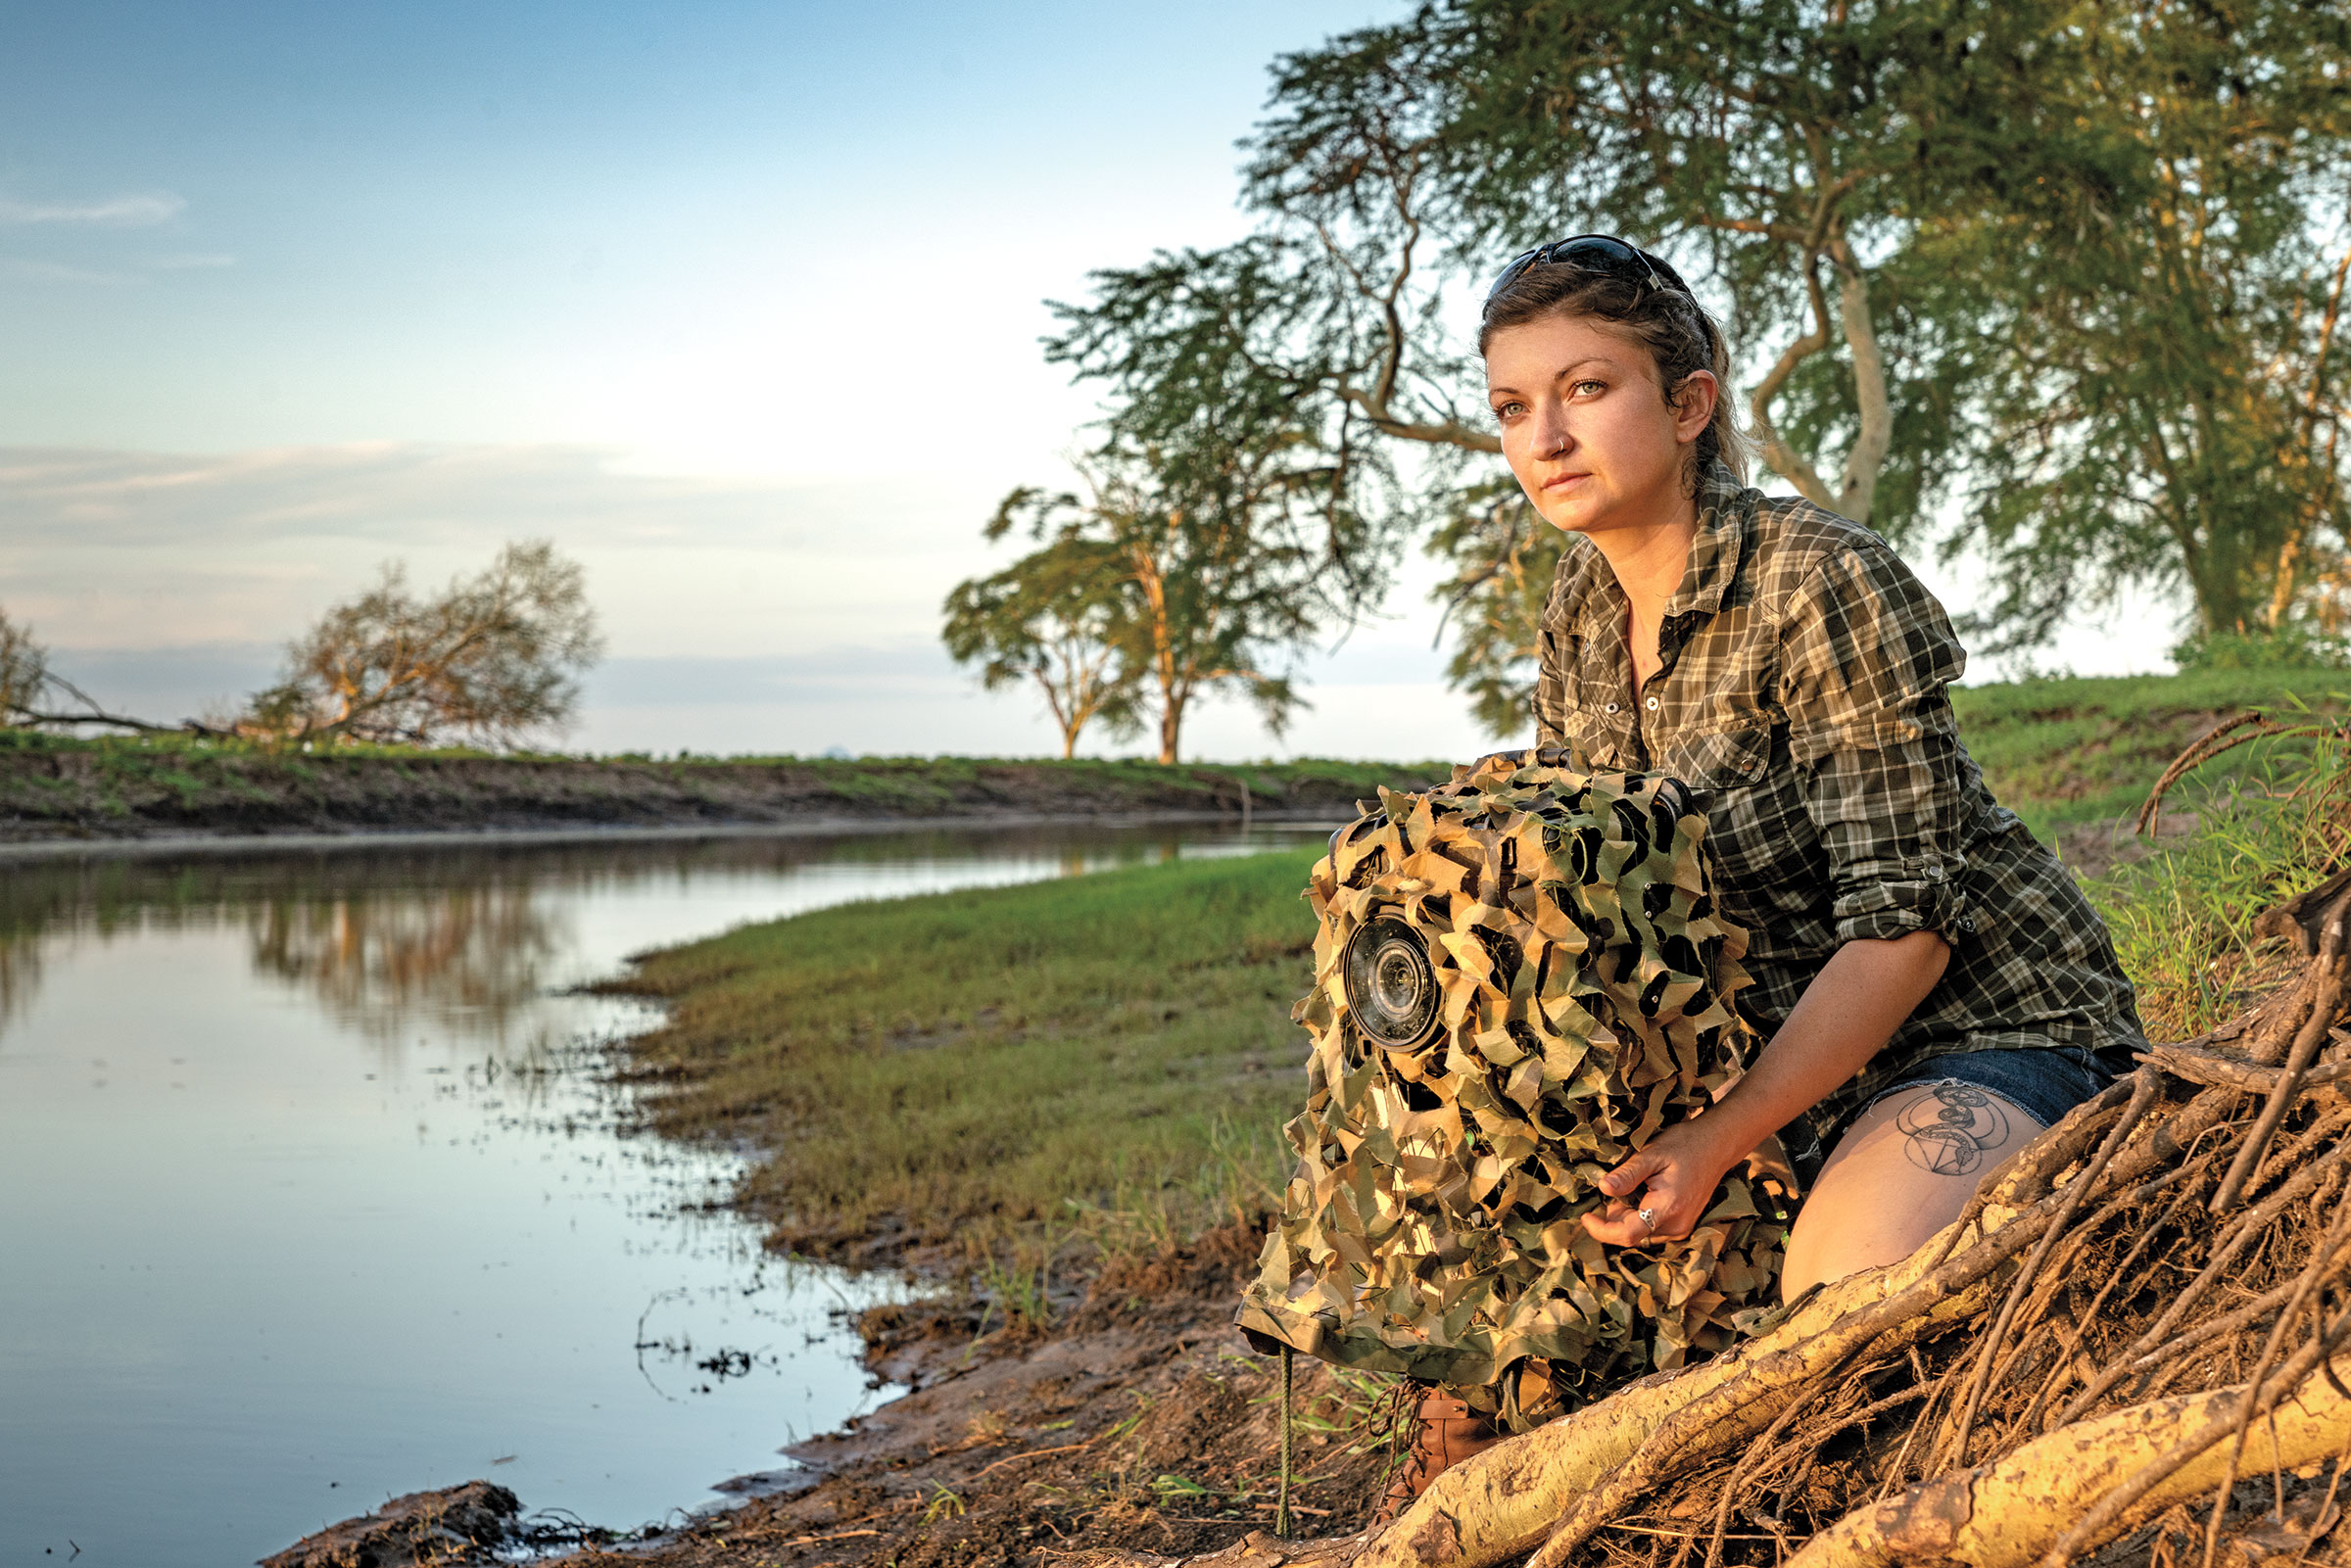 Jen Guyton sets a camera trap at a river in Gorongosa National Park, Mozambique. The trees alongside are a popular nighttime roost and wading birds fish the shallows. Piotr Naskrecki